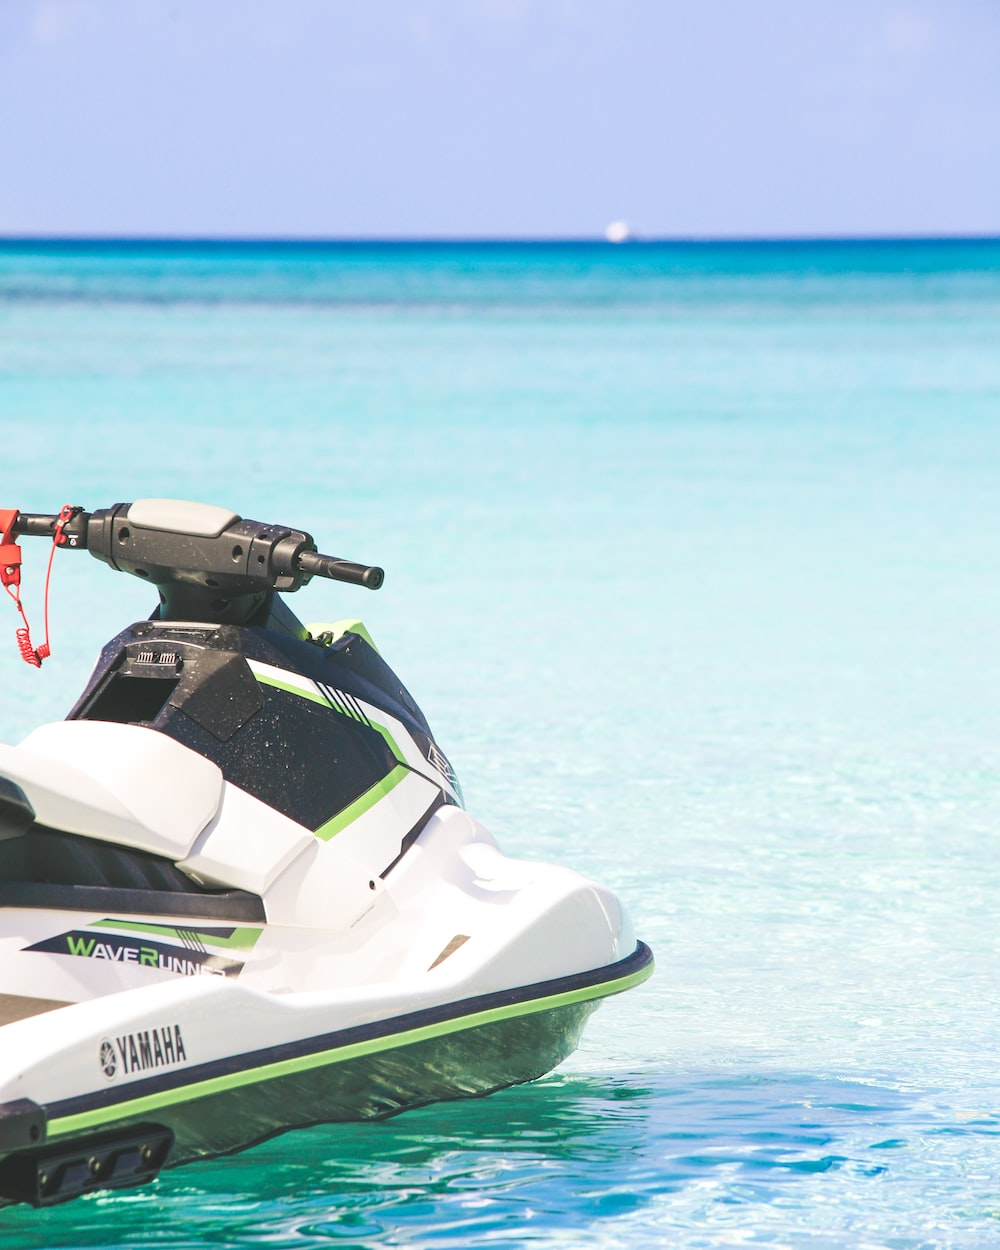 white and green personal watercraft on water